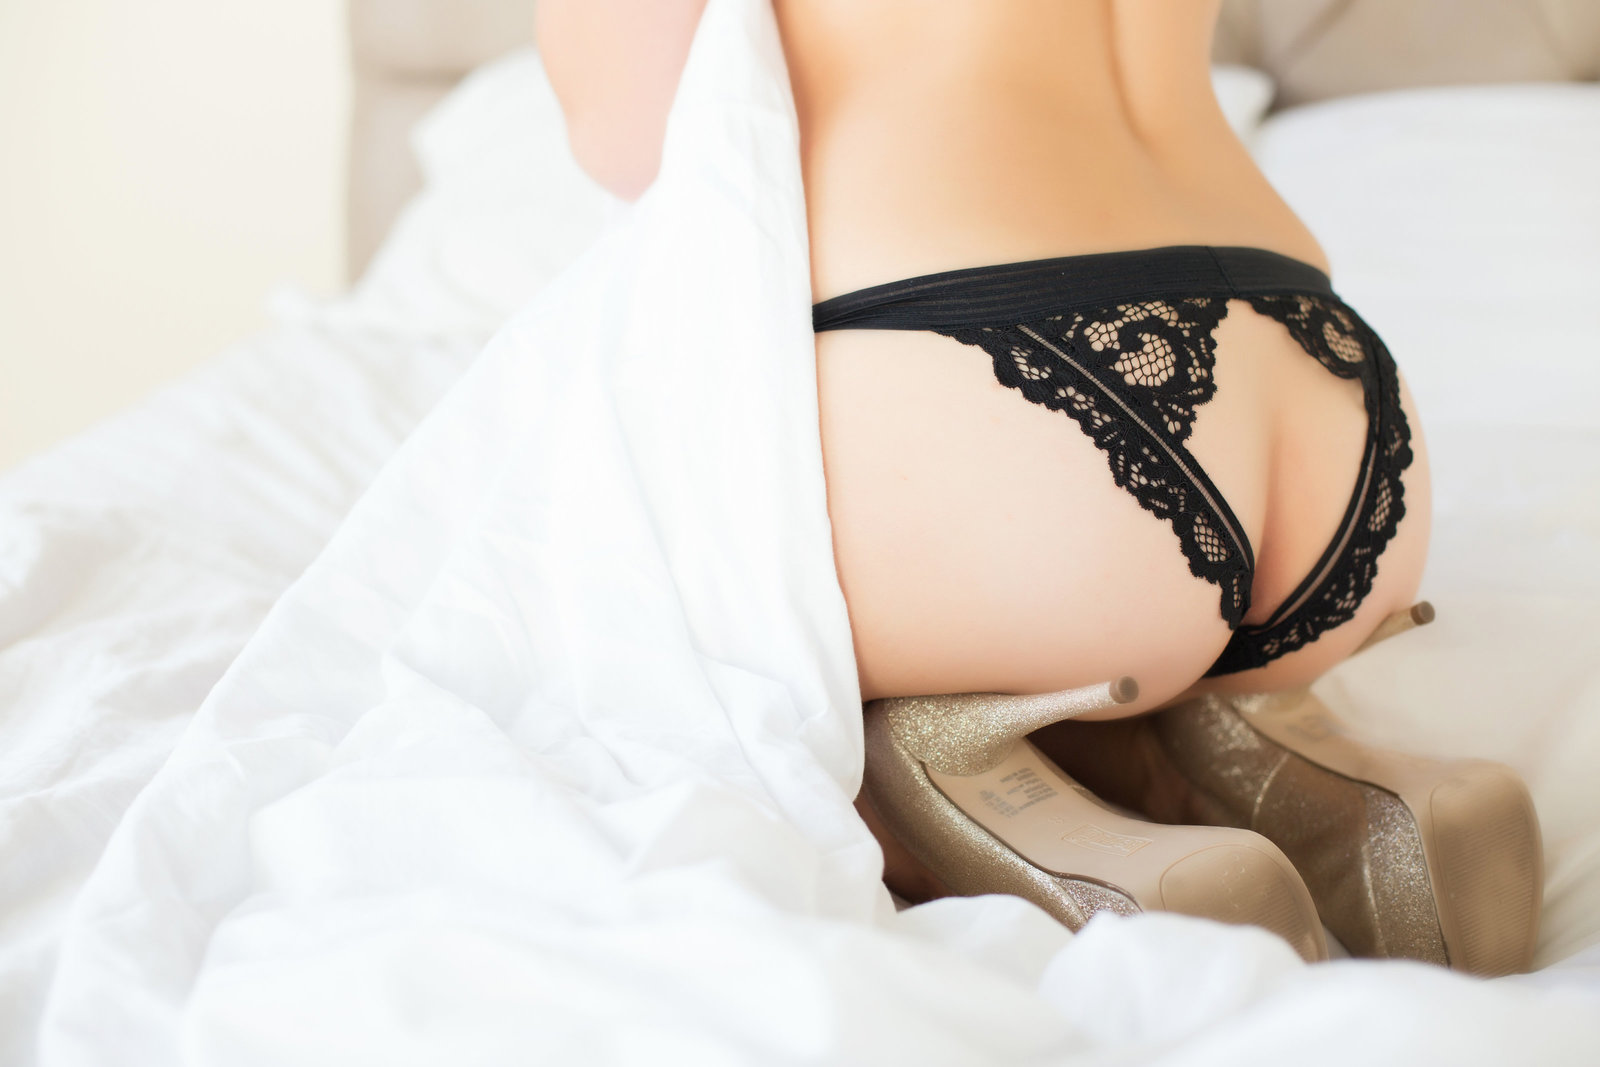 black lace panty photo, sexy boudoir scottsdale